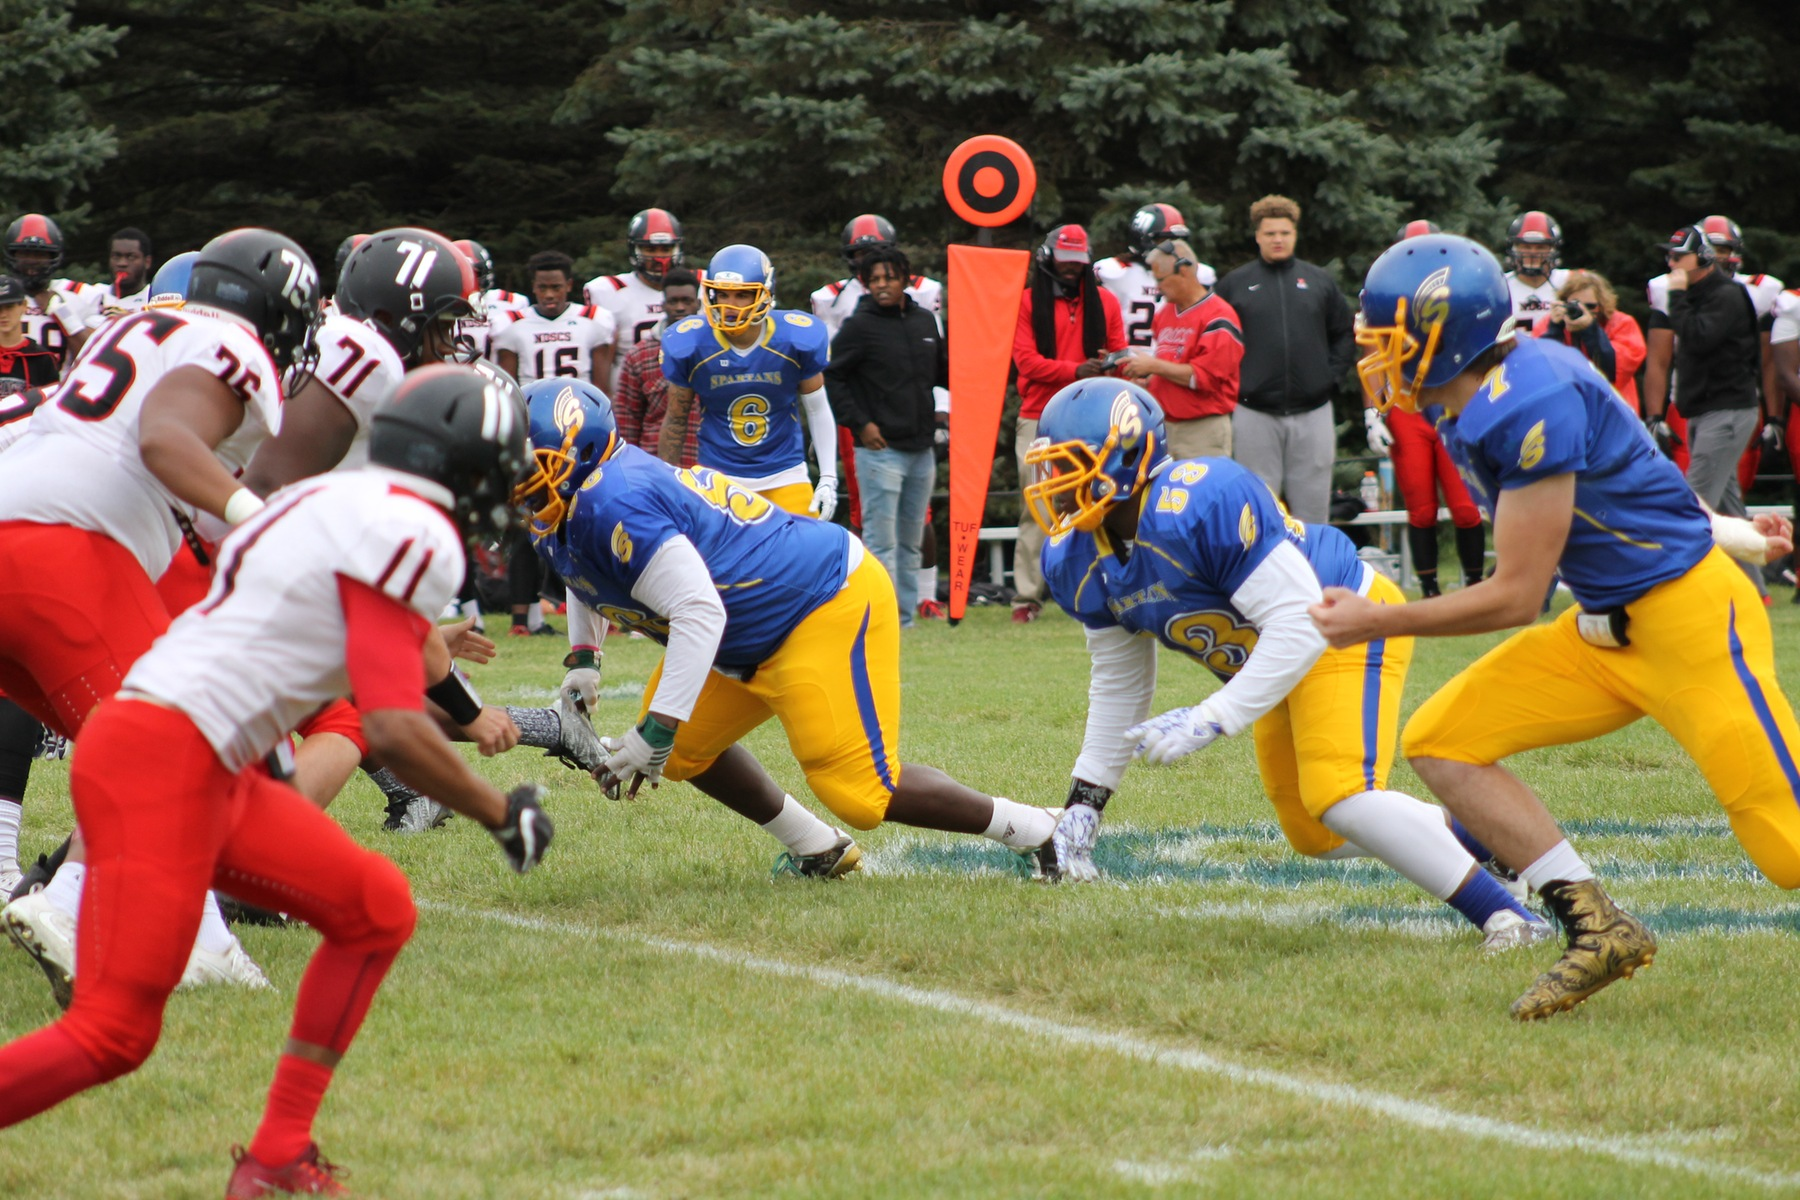 Spartans Close Out Season With Loss to CLC